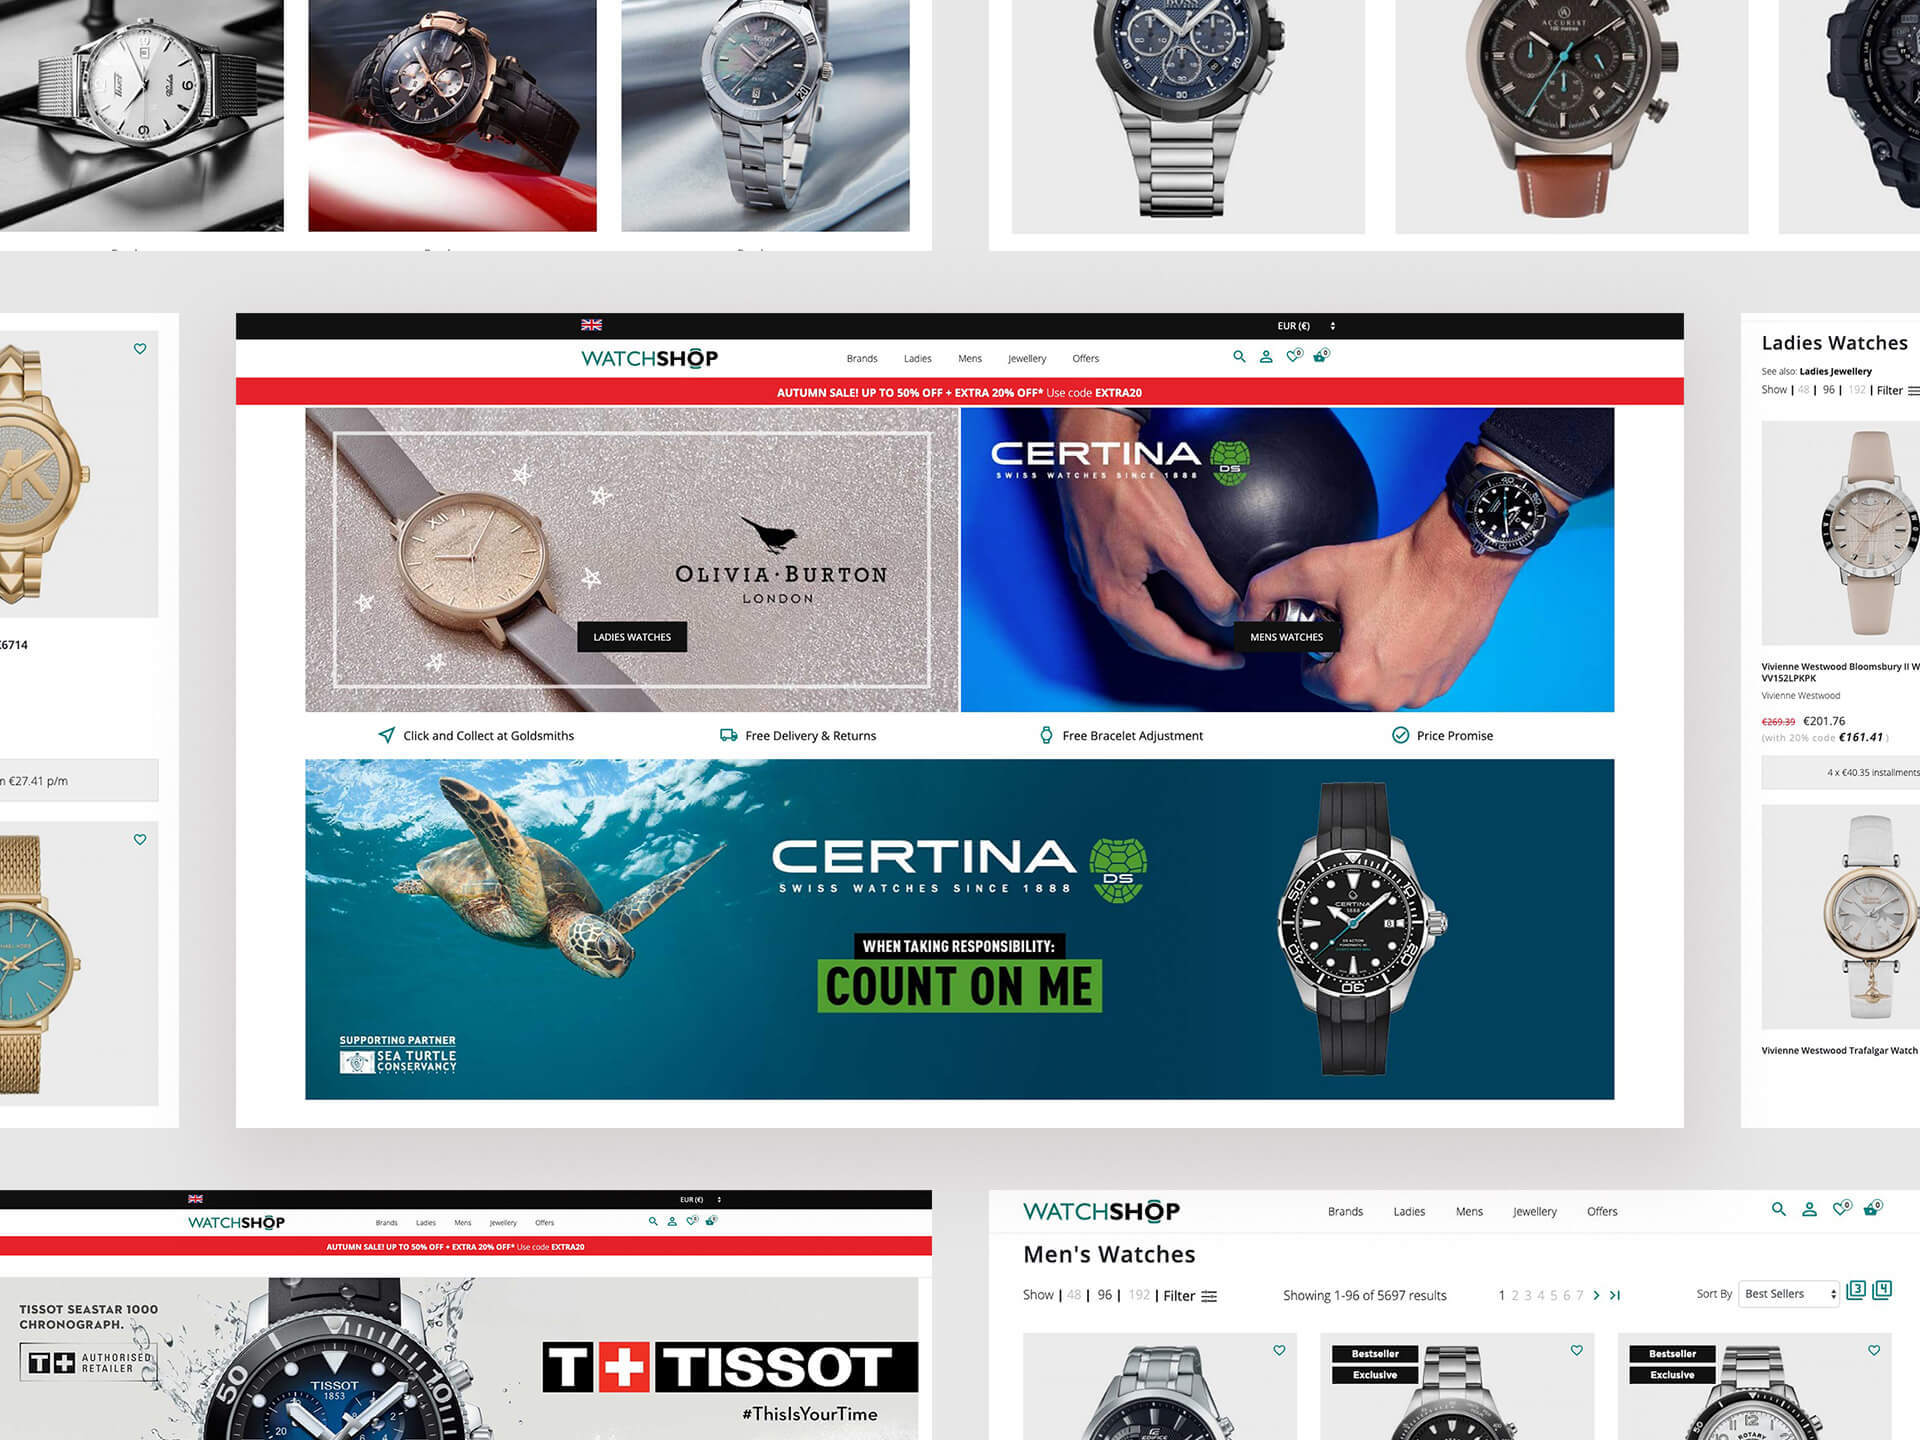 WatchShop.com | Holiday Deals on Watches